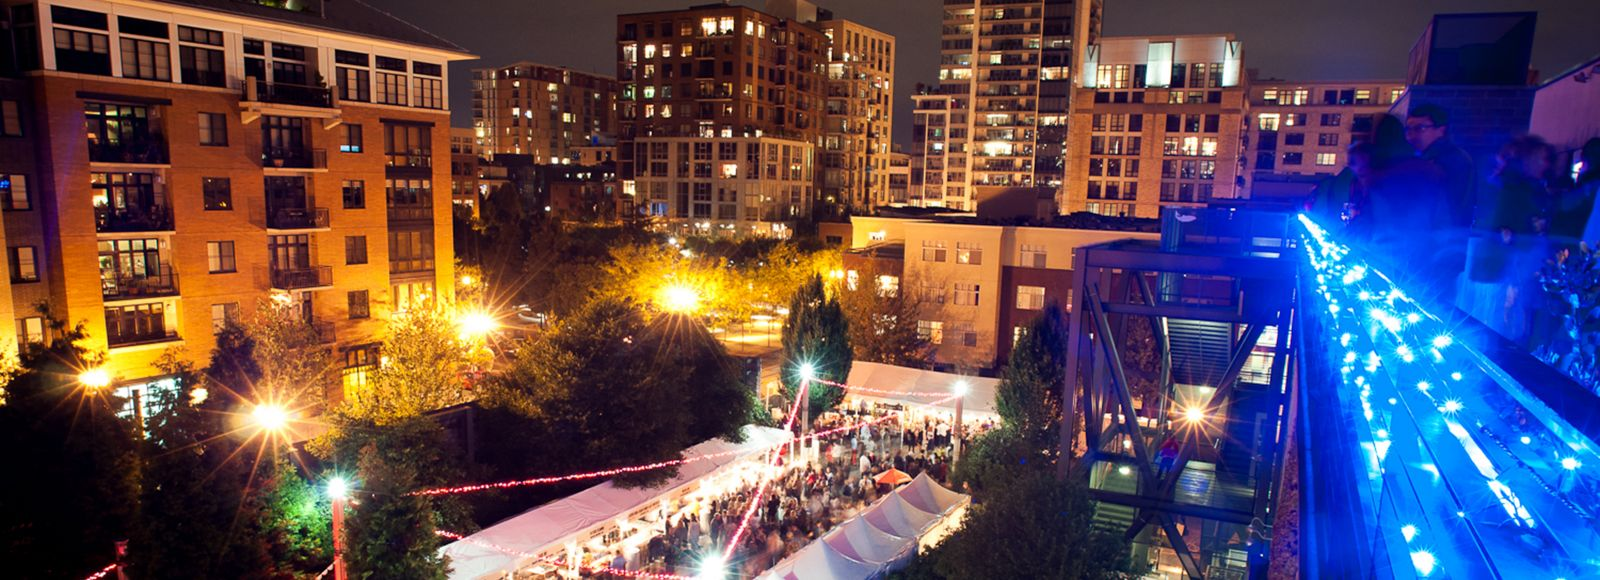 aerial shot of nighttime outdoor celebration with white tents set up, lights strung from above, and crowds of people below rooftop terrace